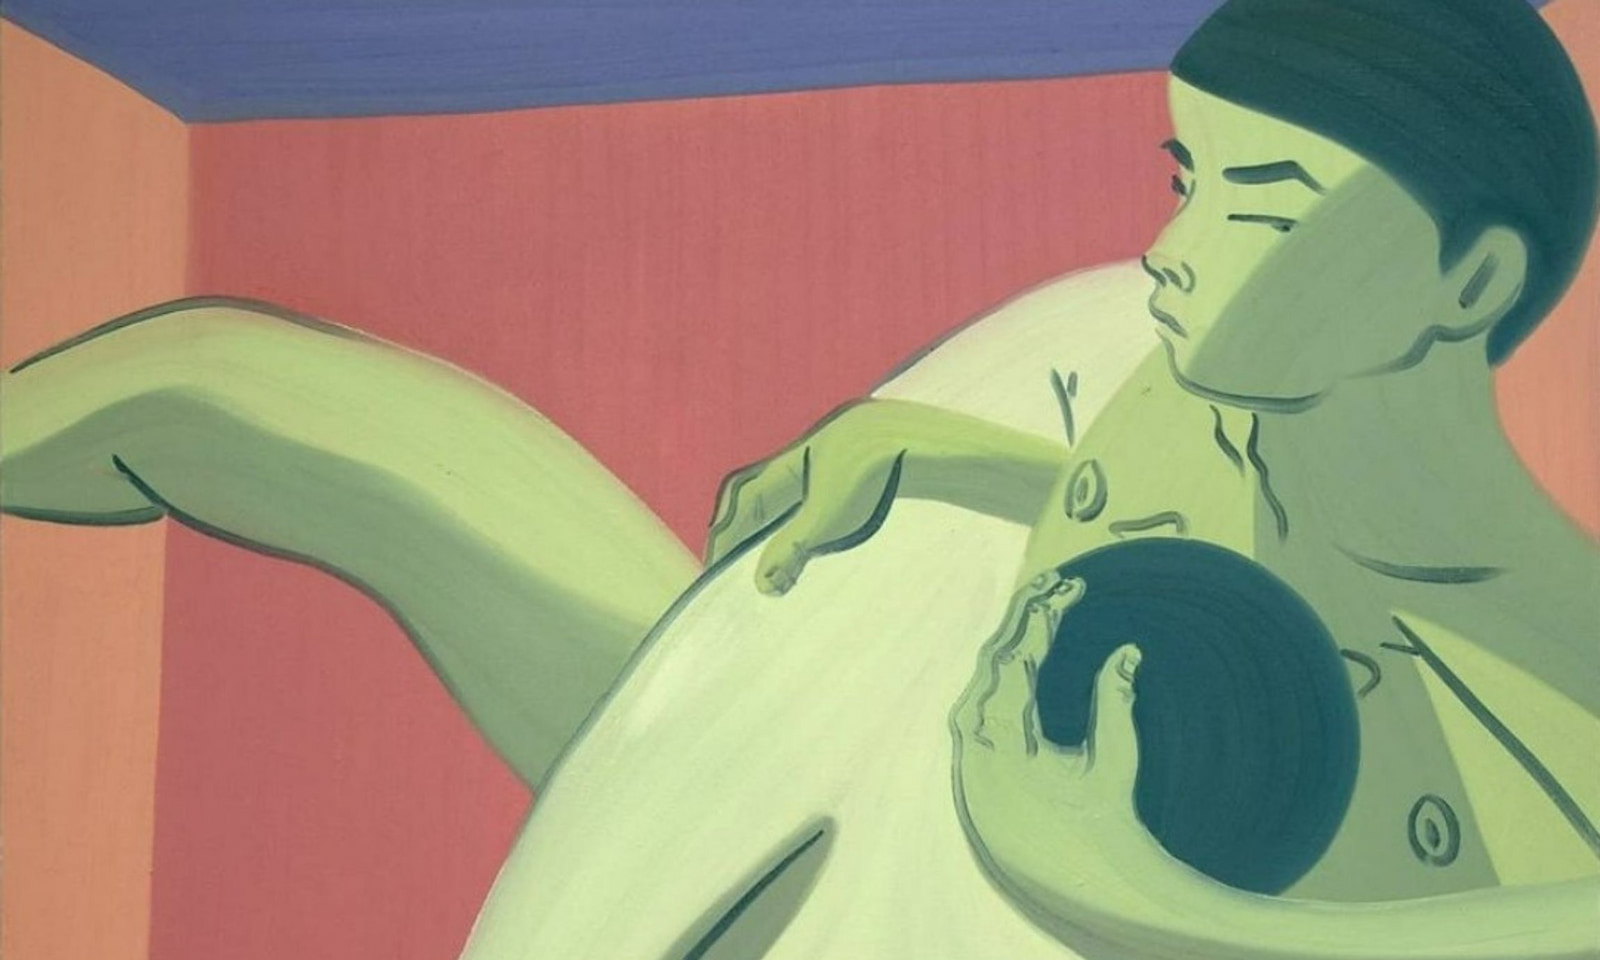 Men Can Be Straight and Still Intimate with Each Other: That is Mark Yang's Message